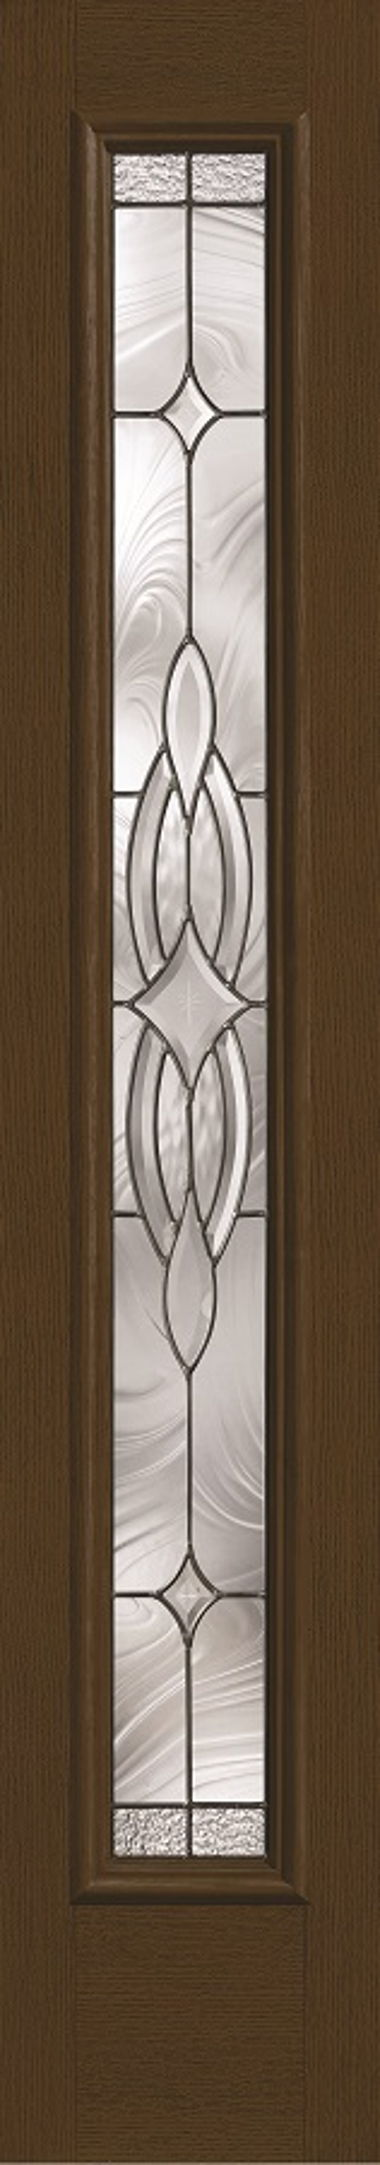 DECORATIVE OVAL WOOD GRAIN SIDELIGHT